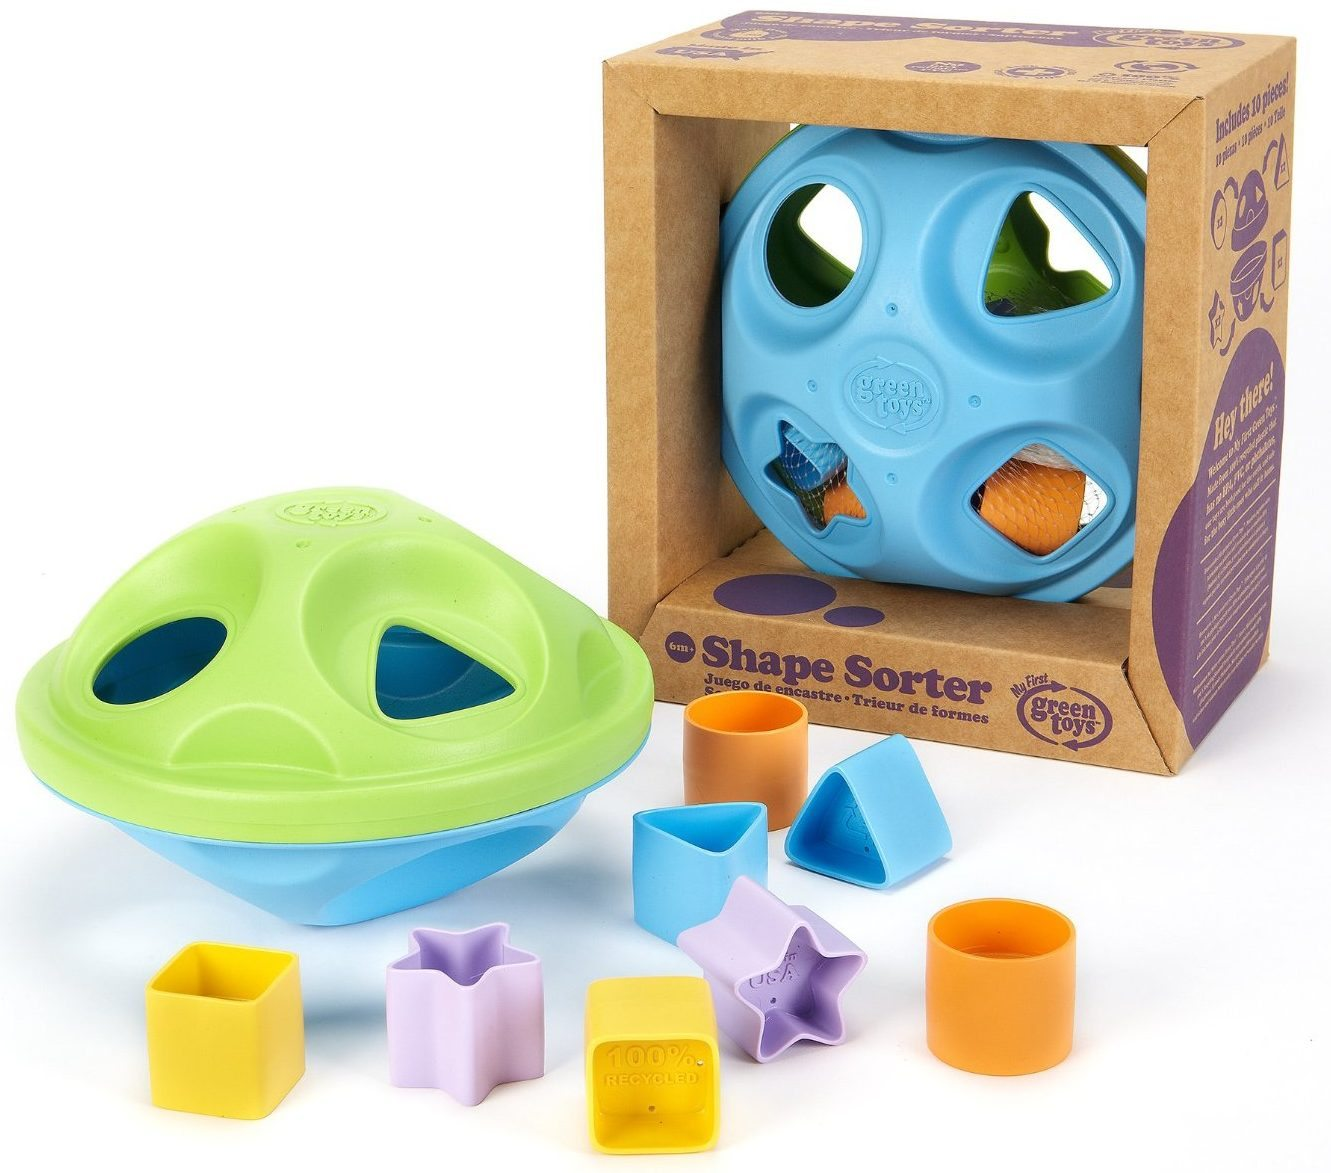 green toys shape sorter e1487591580539 - 6 Superb Shape Sorters to Engage Your Little One